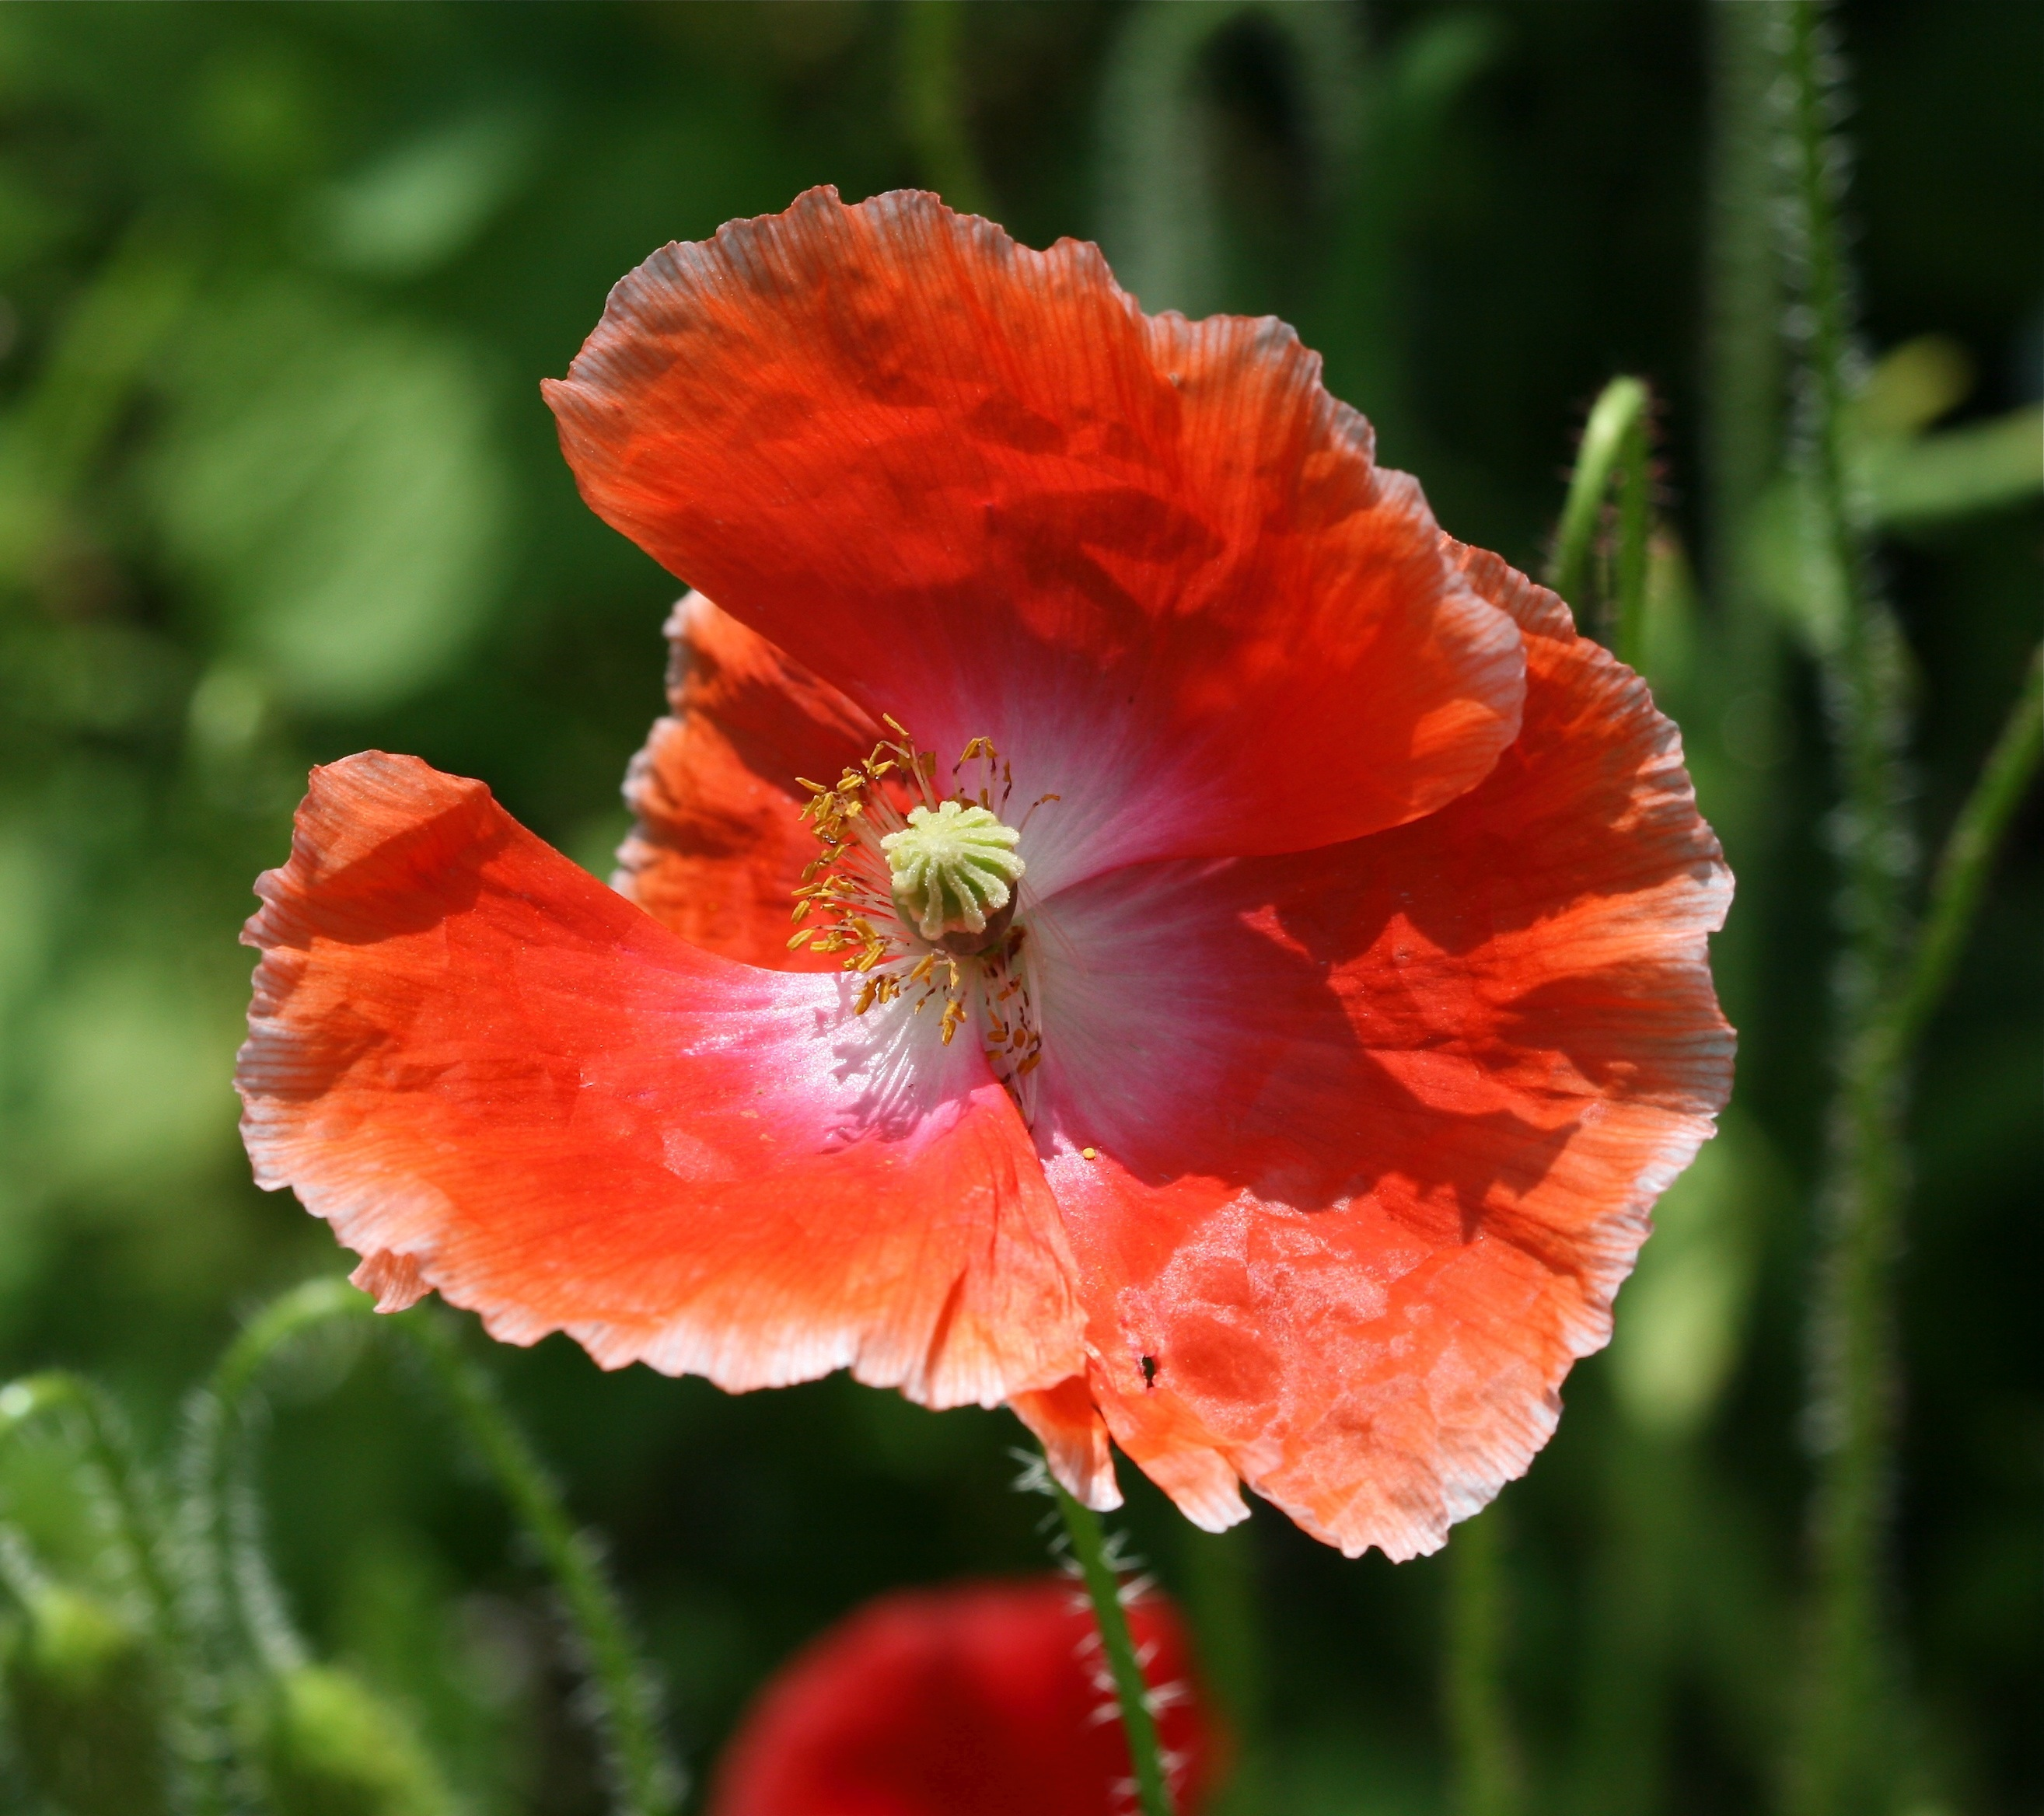 Poppies blossoms blooms